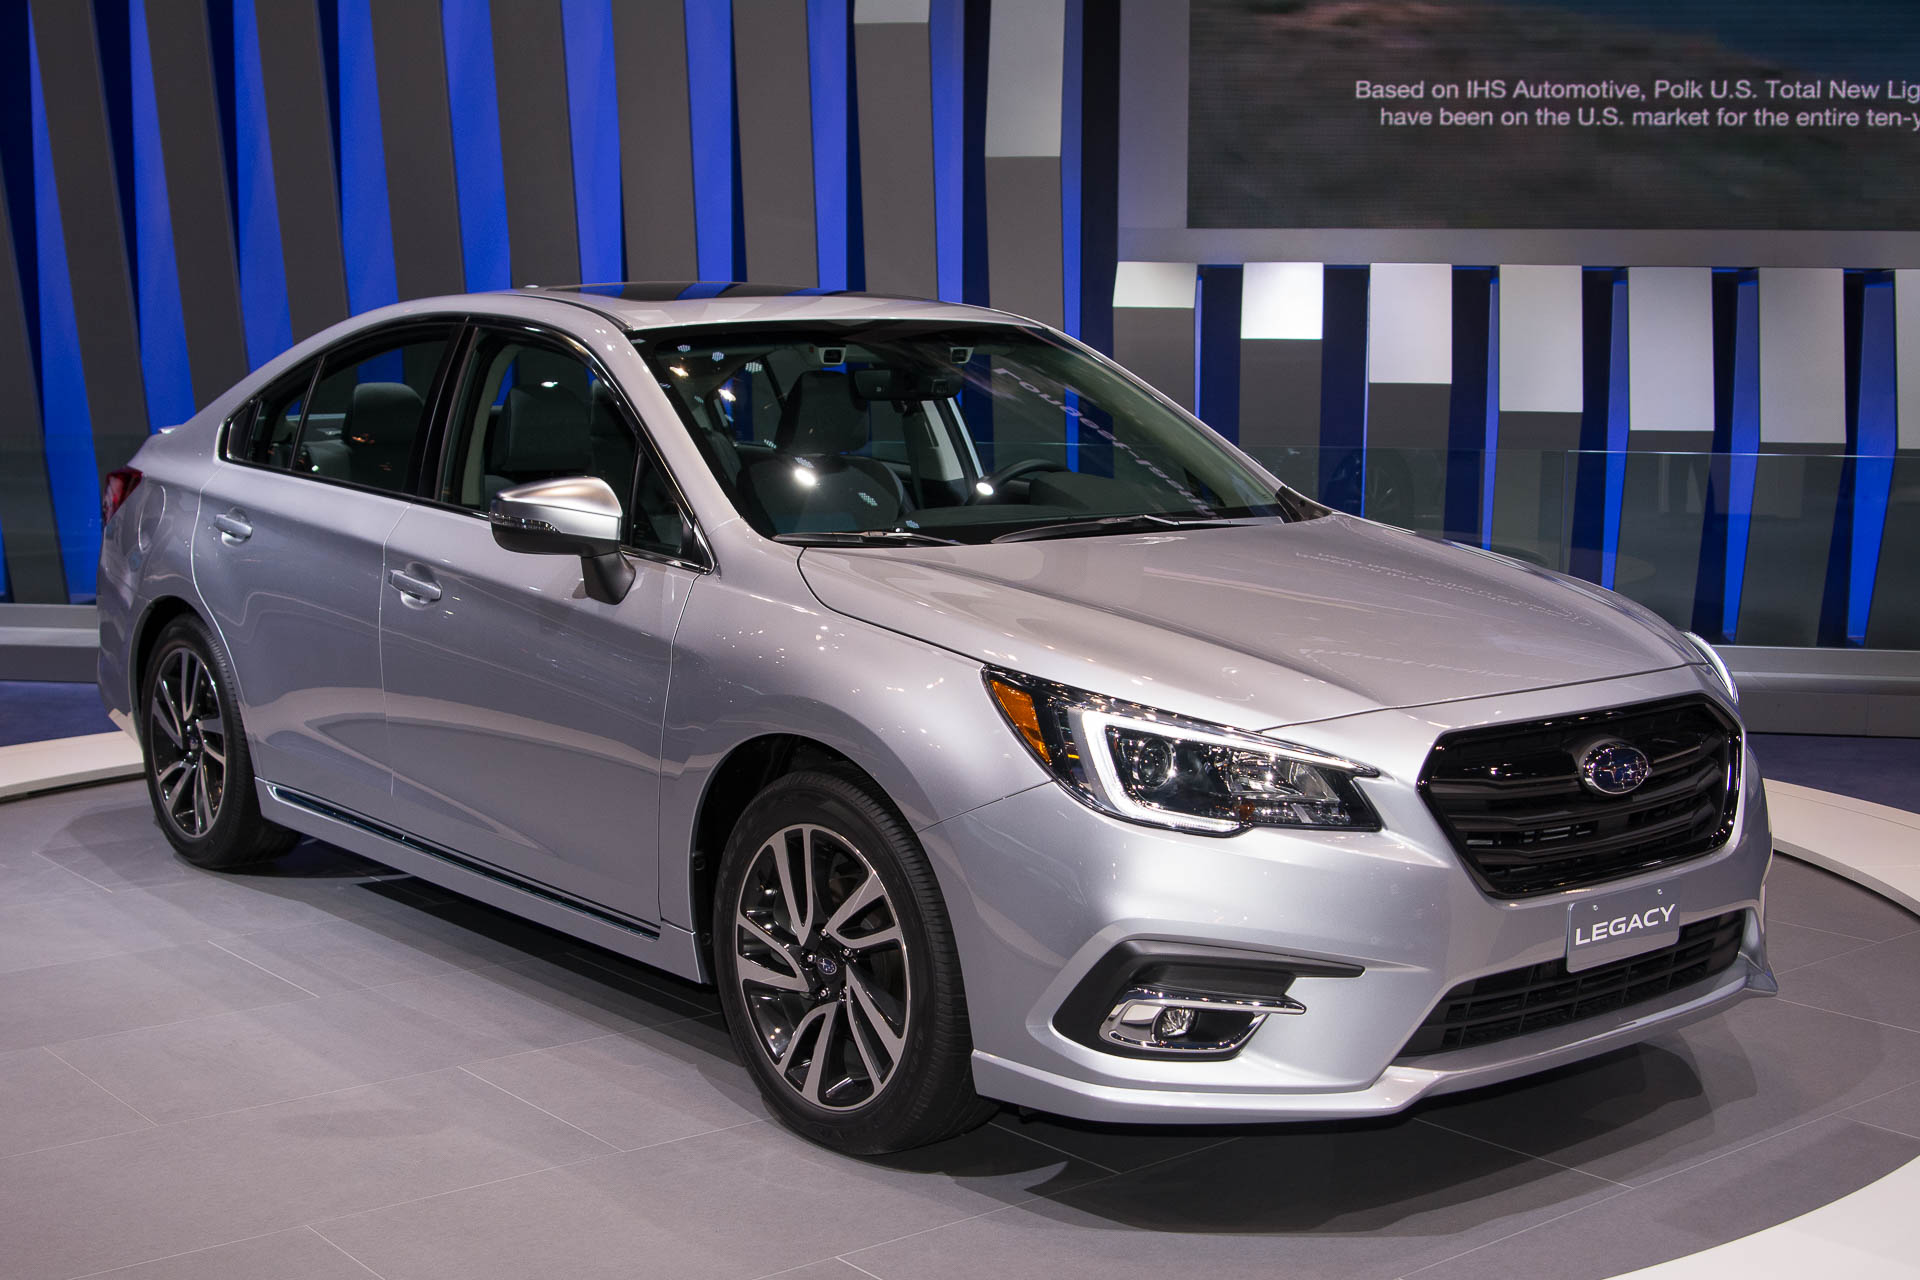 2021 Subaru Legacy Release Date, Redesign, Specs, And Colors >> 2018 Subaru Legacy Breaks Cover At 2017 Chicago Auto Show